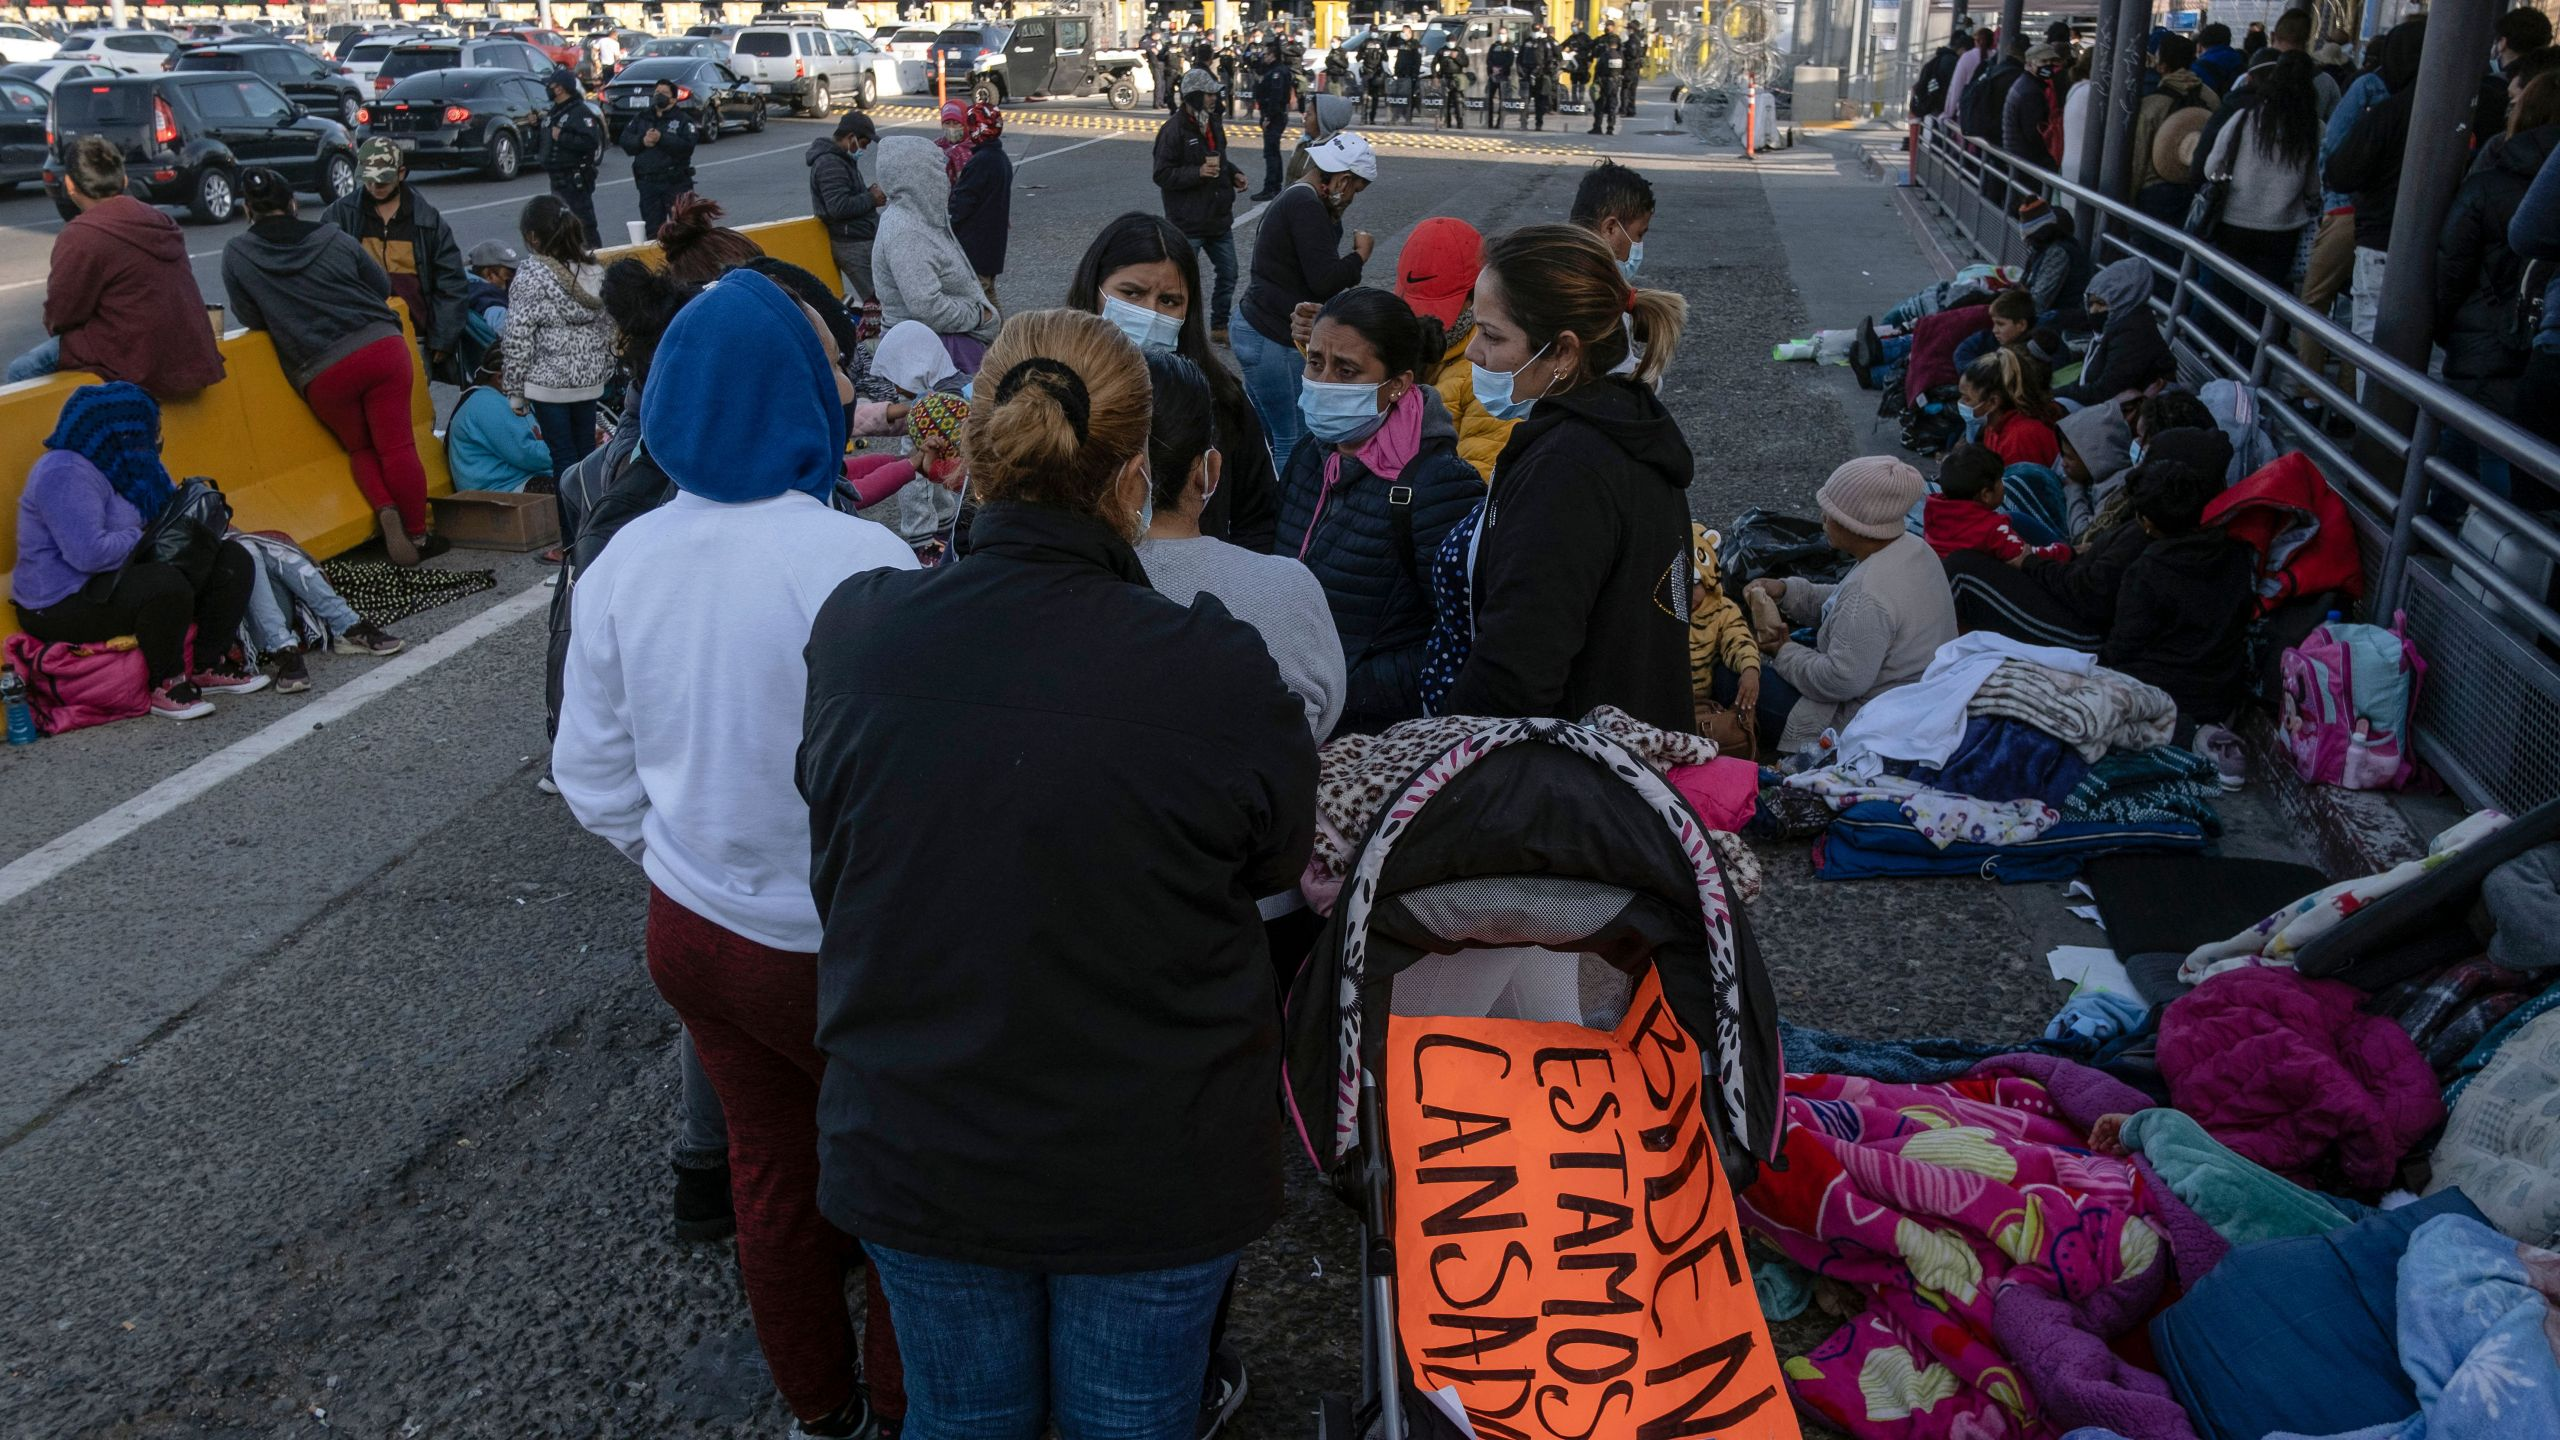 Migrants and asylum seekers are seen after spending the night in one of the car lanes off the San Ysidro Crossing Port on the Mexican side of the US_Mexico border in Tijuana, Baja California state, Mexico on April 24, 2021. (Guillermo Arias / AFP via Getty Images)